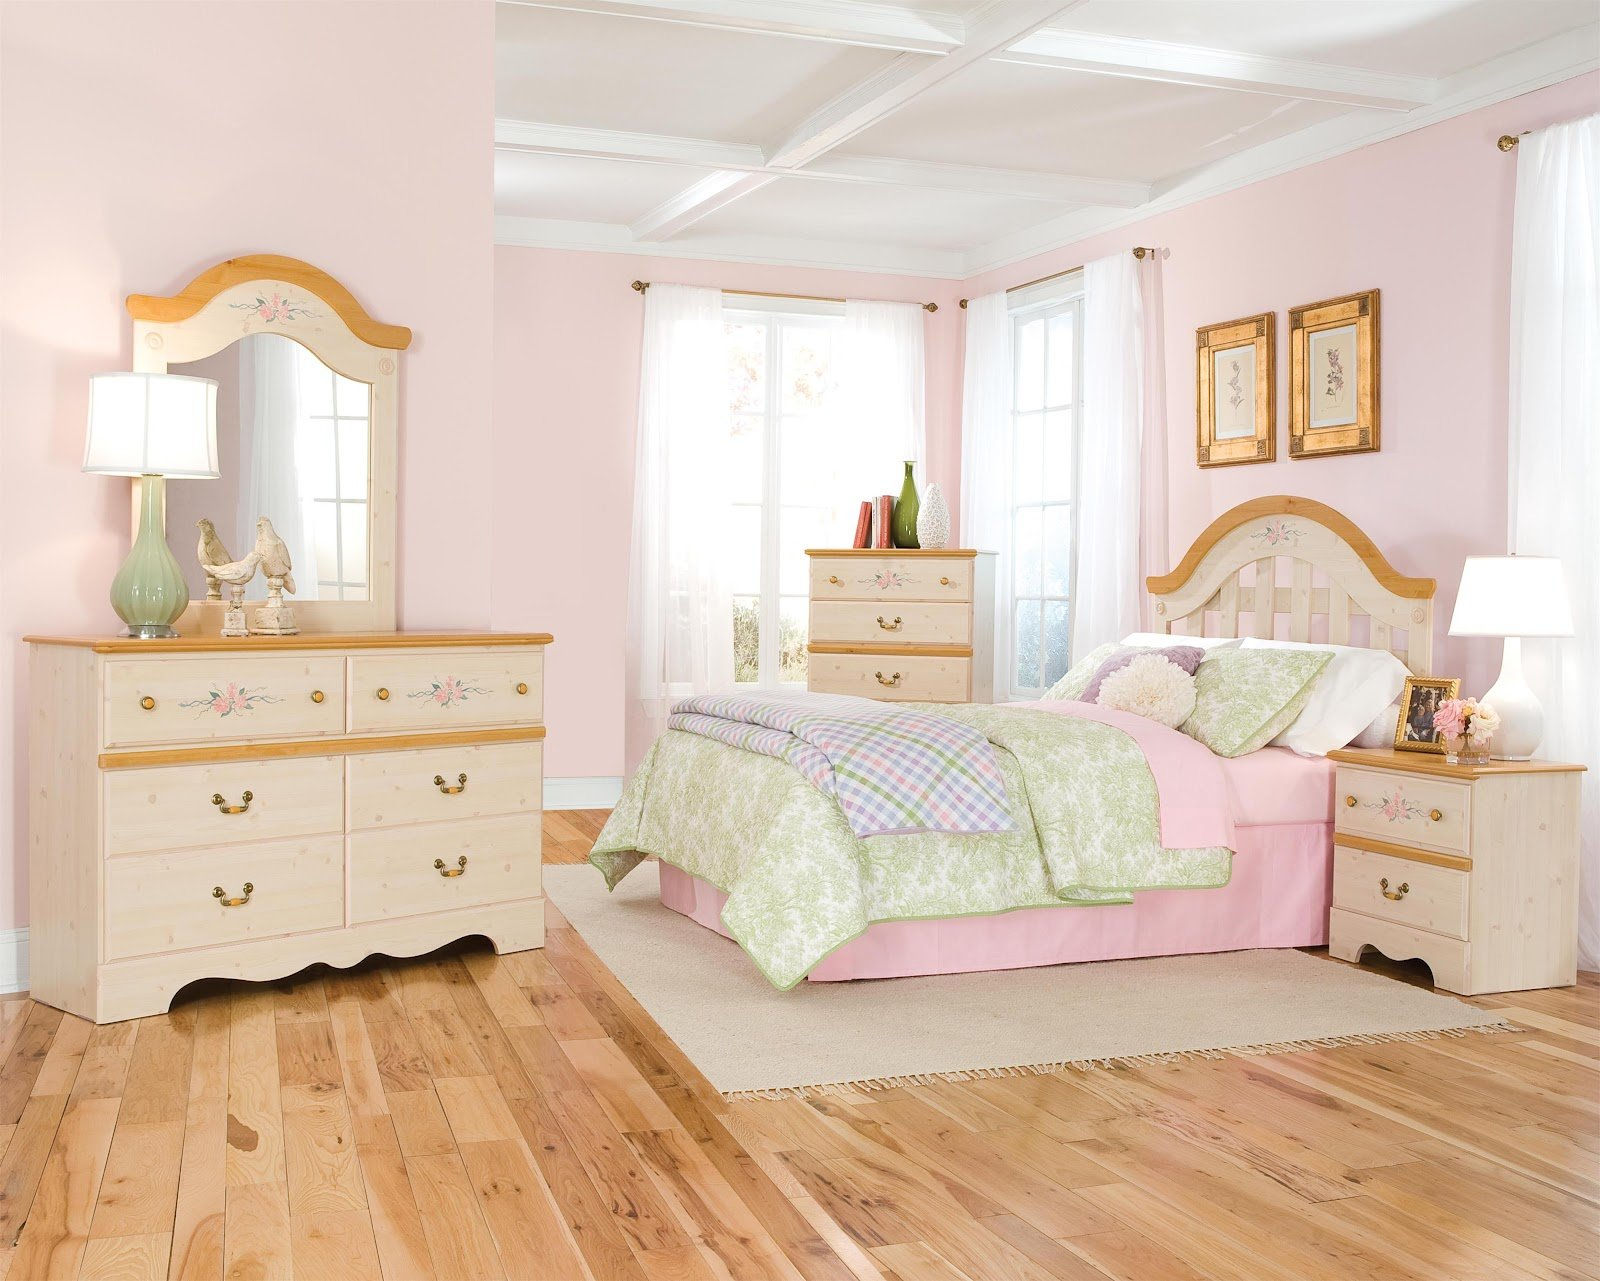 Best Knoxville Wholesale Furniture Perfect Bedroom For Your With Pictures